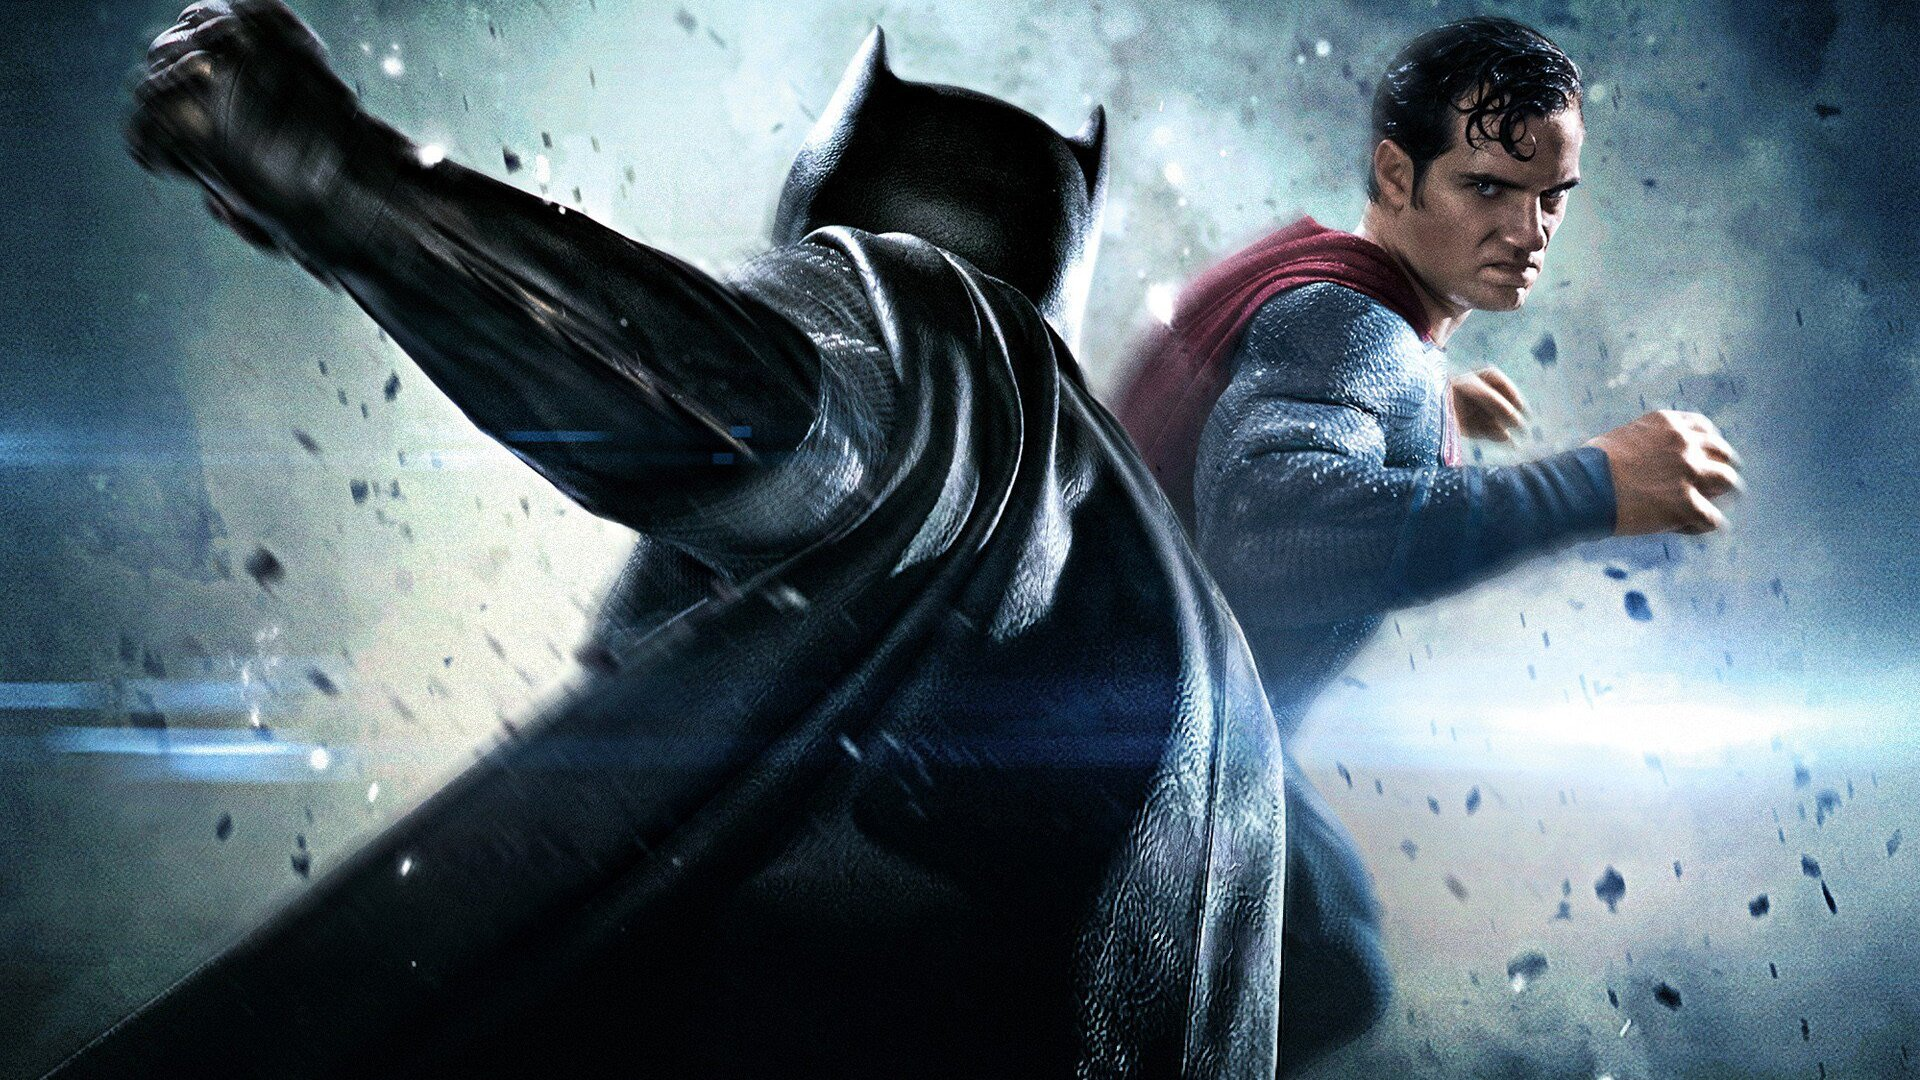 batman v superman download full movie